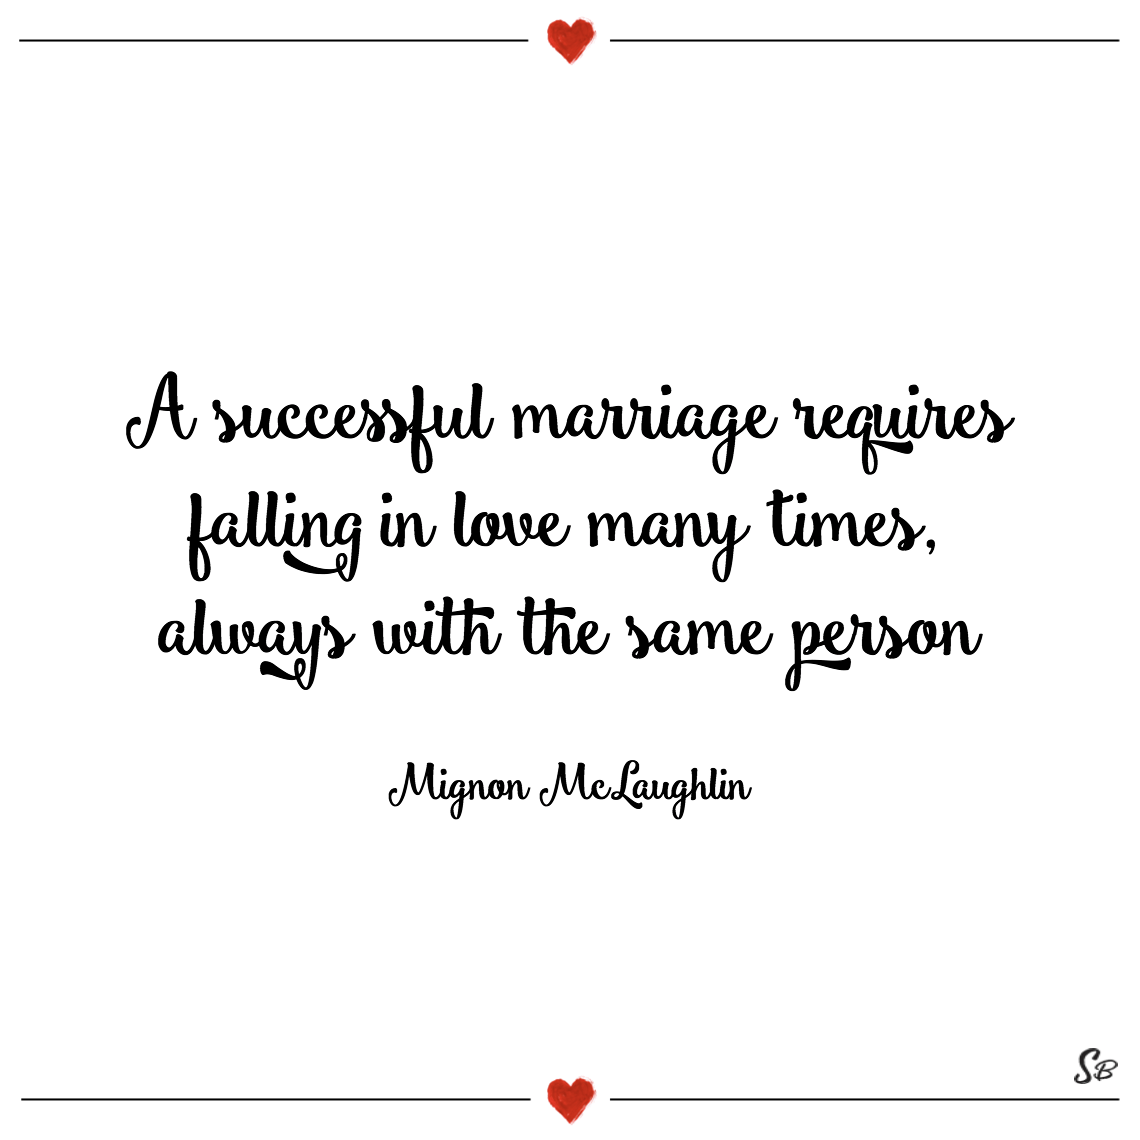 Quotes On Love And Marriage 31 Beautiful Marriage Quotes About Love And Friendship  Spirit Button